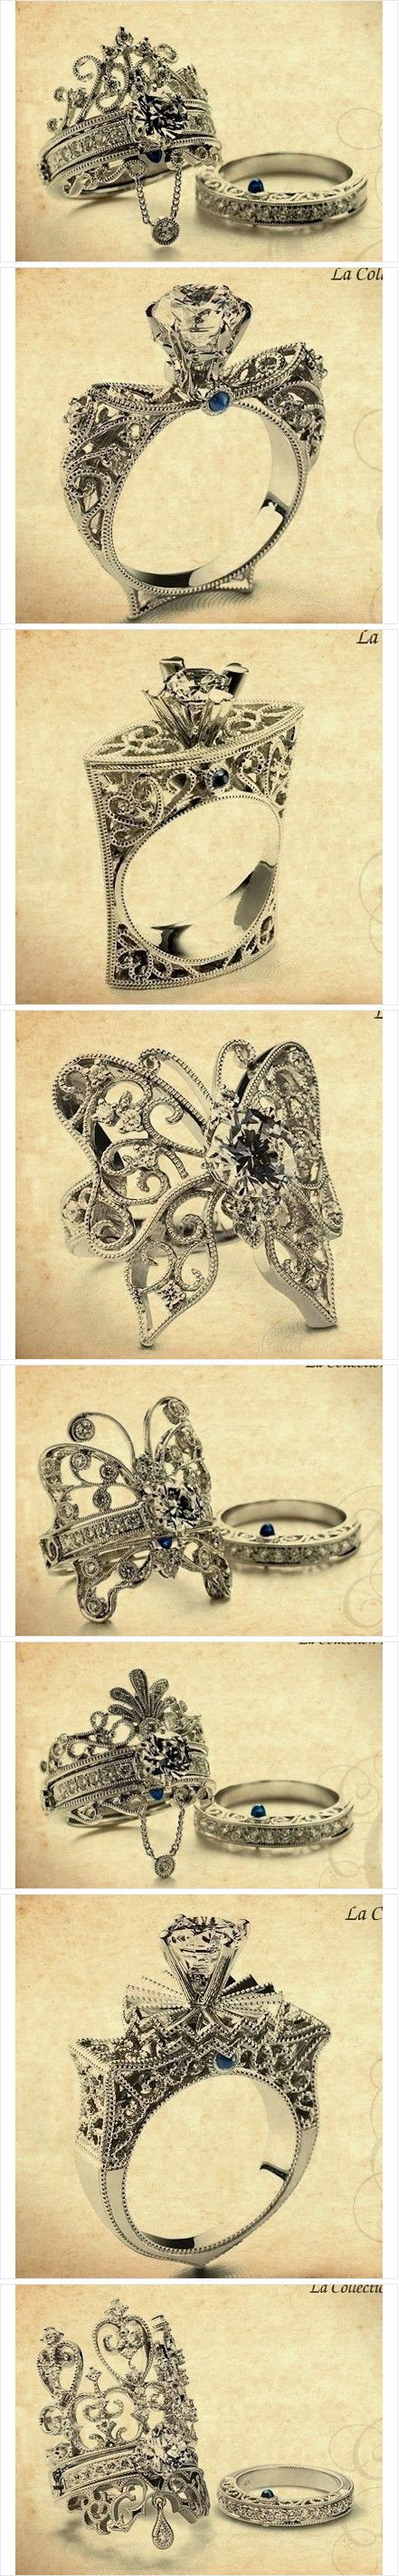 best jewels and treasures images on pinterest